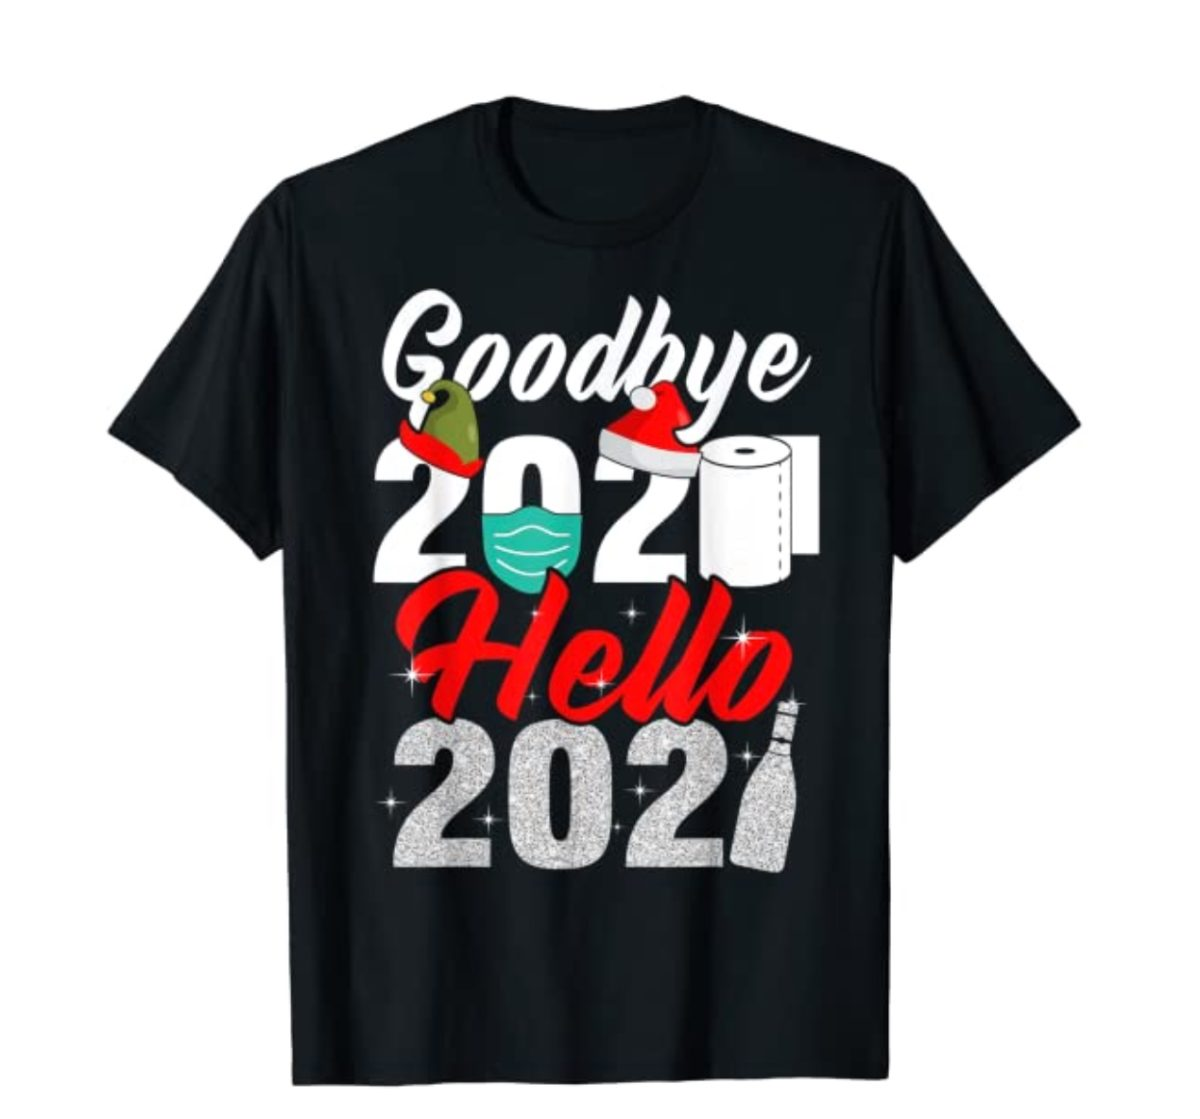 13 items you can order on amazon now for the perfect new year's eve party at home   why not end the worst year ever and begin 2021 with a lot of laughs, smiles, and pictures!